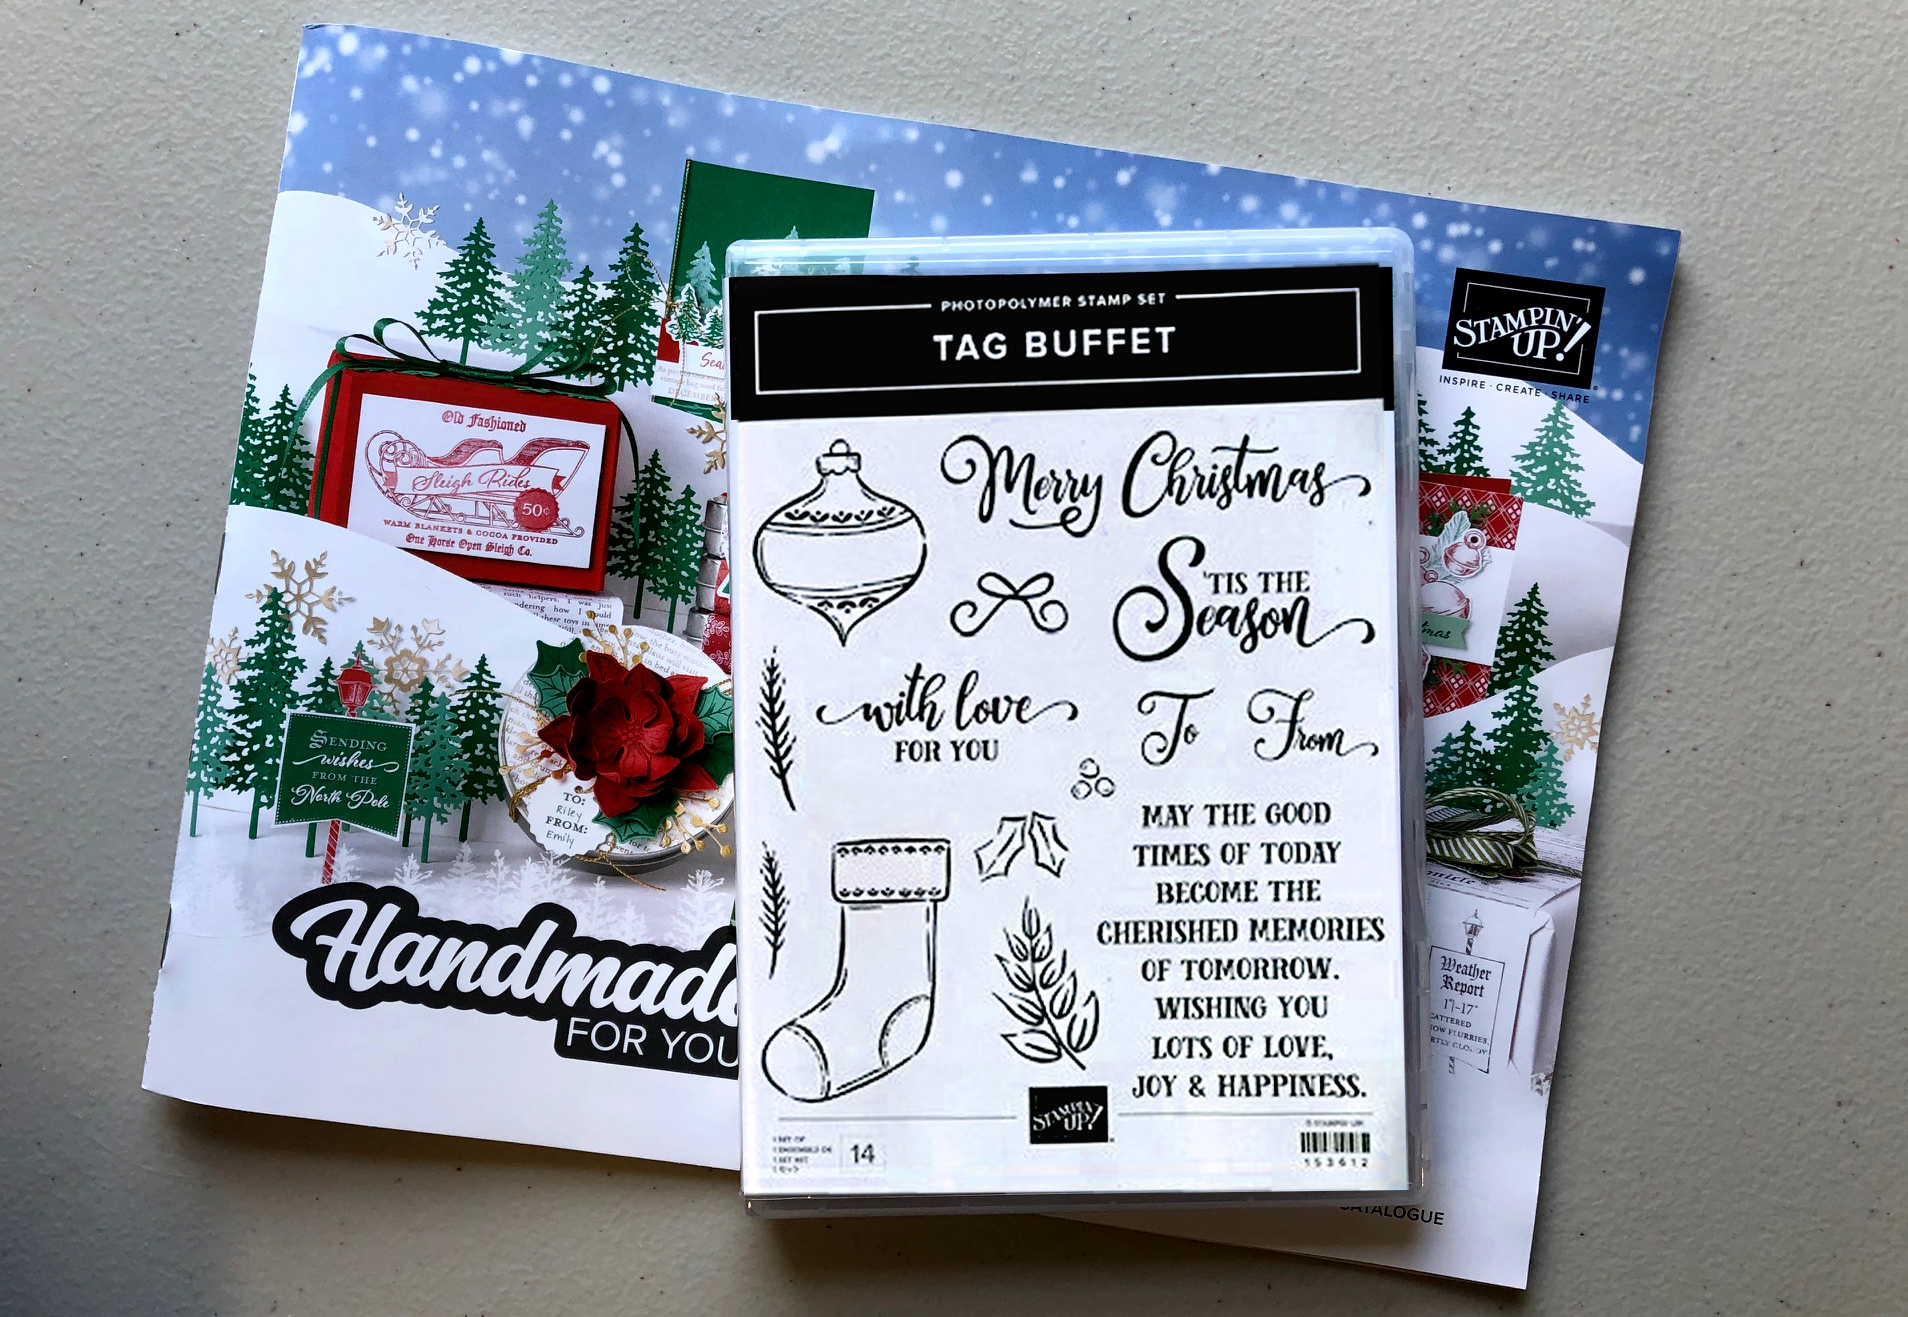 Tag Buffet Stampset